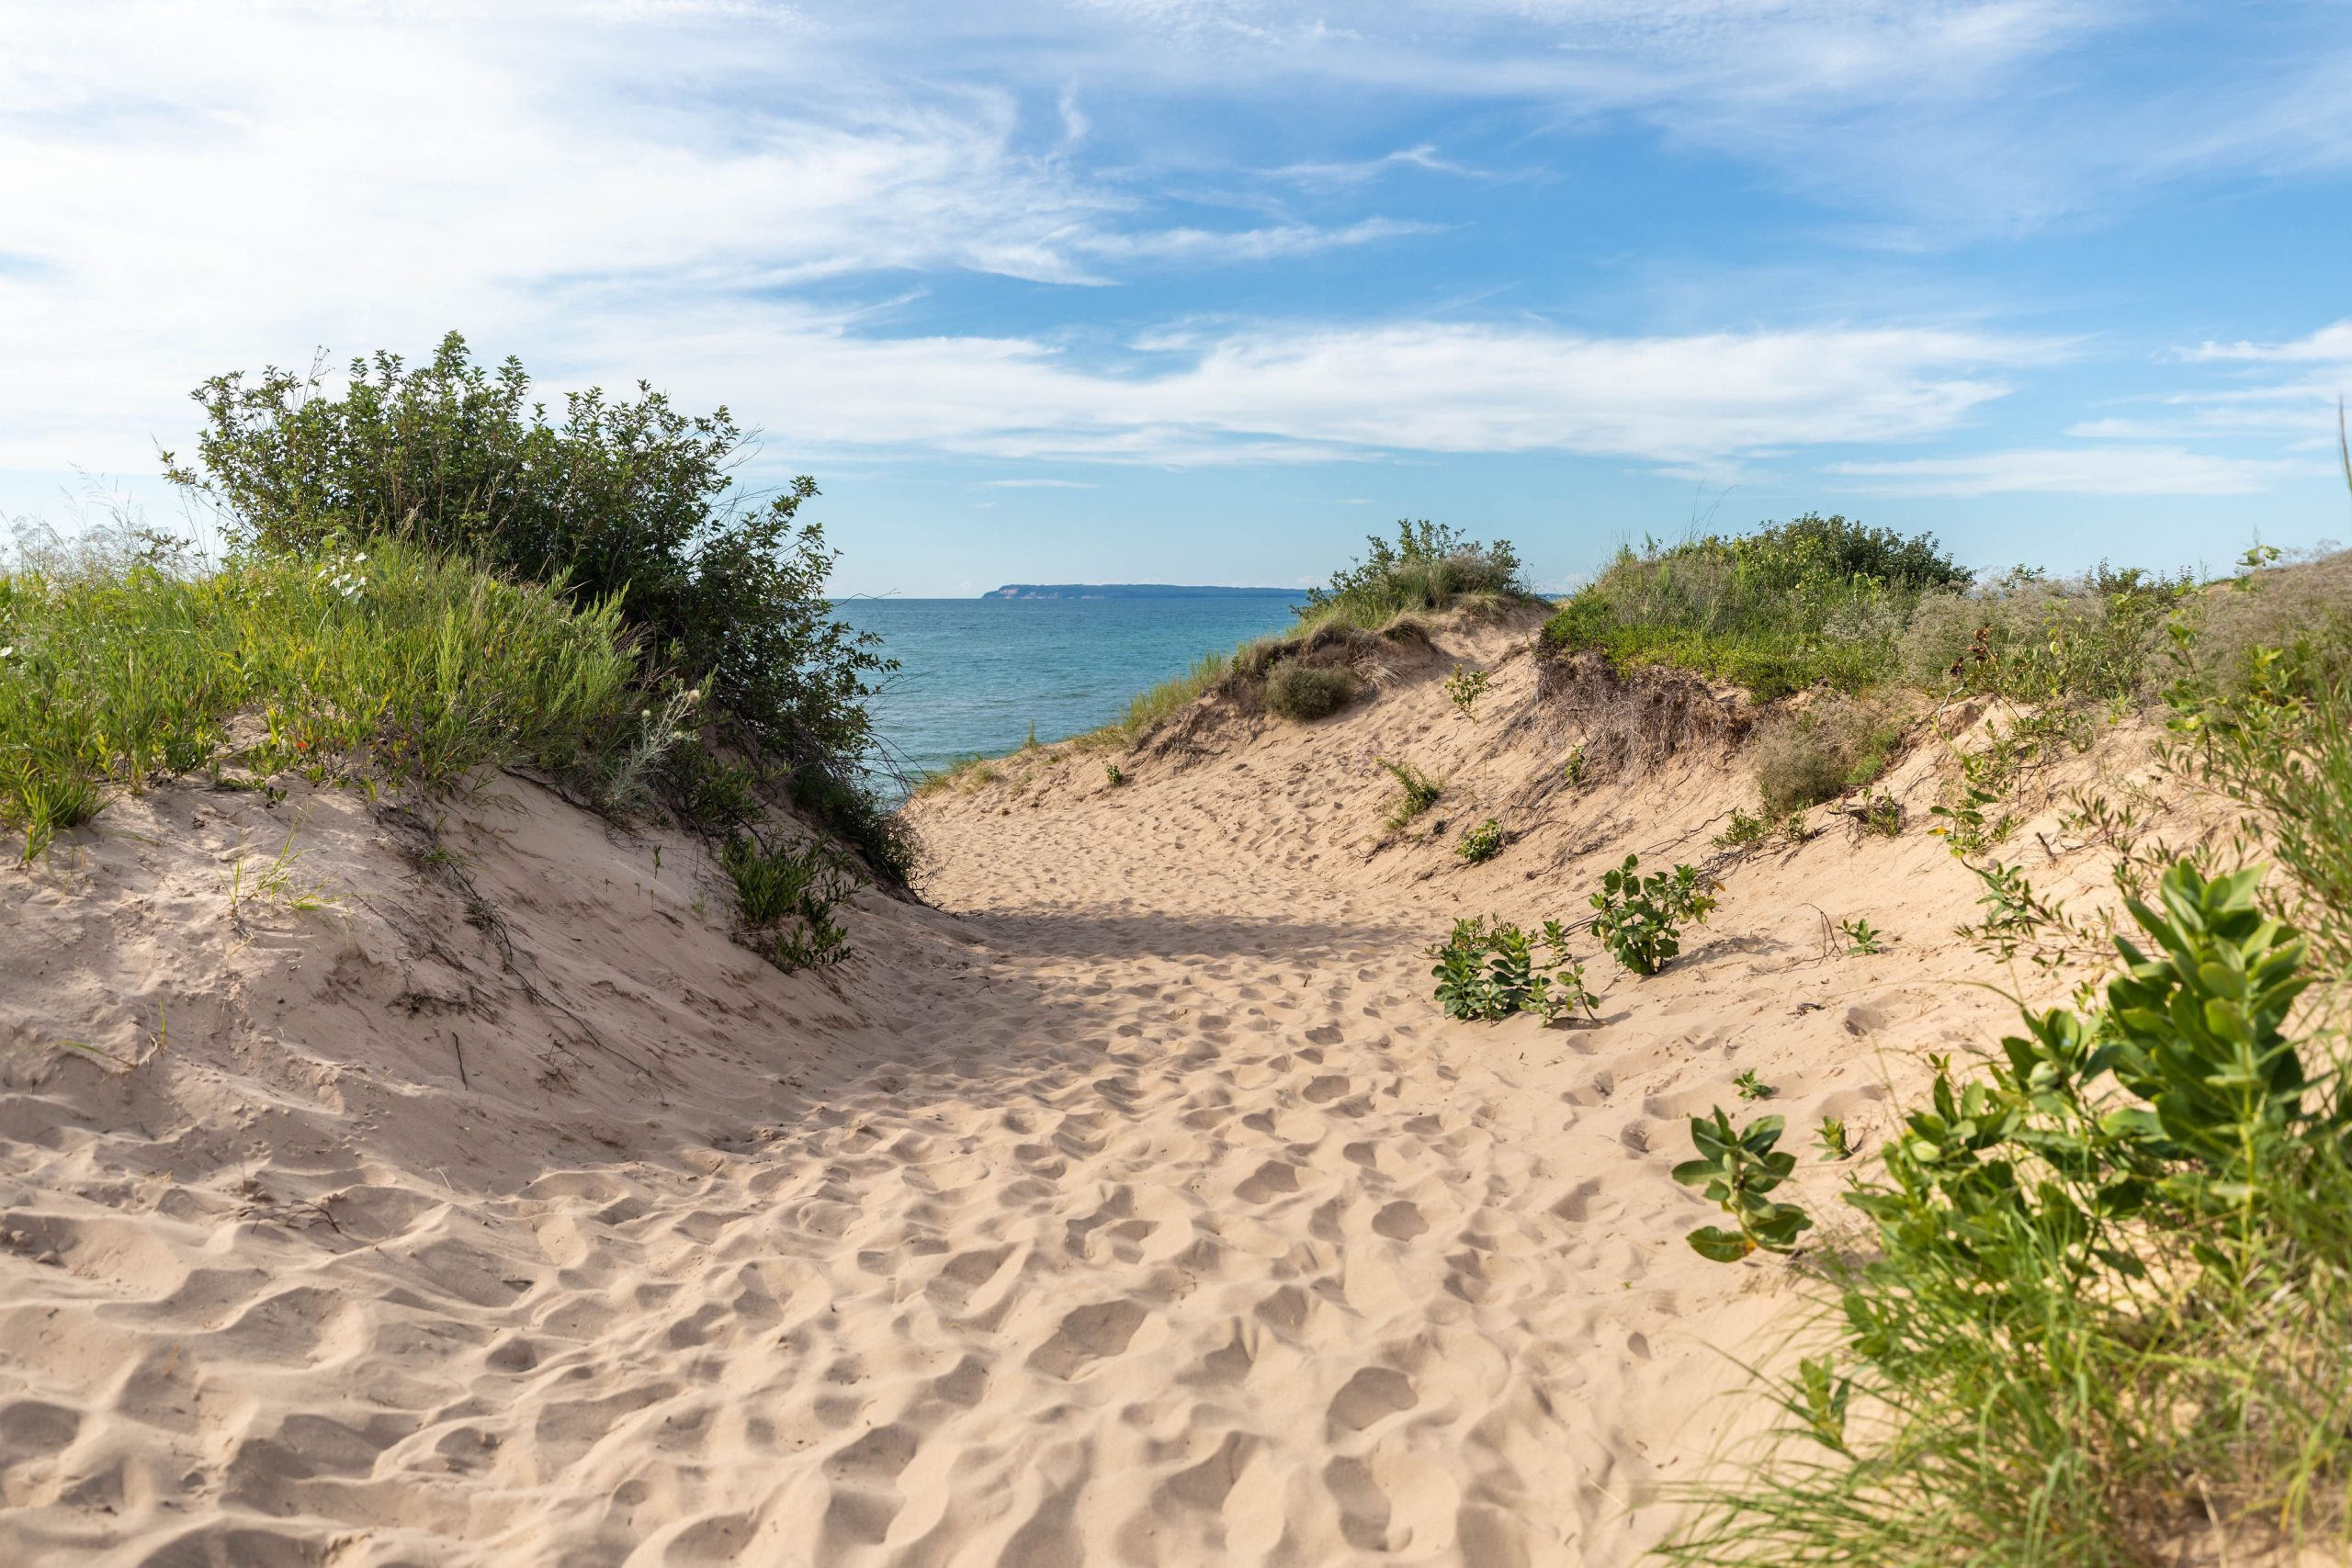 The Beach at Sleeping Bear Dunes National Lakeshore Incredible Hiking, Swimming, and Birding Most Beautiful Place in America by Annie Fairfax